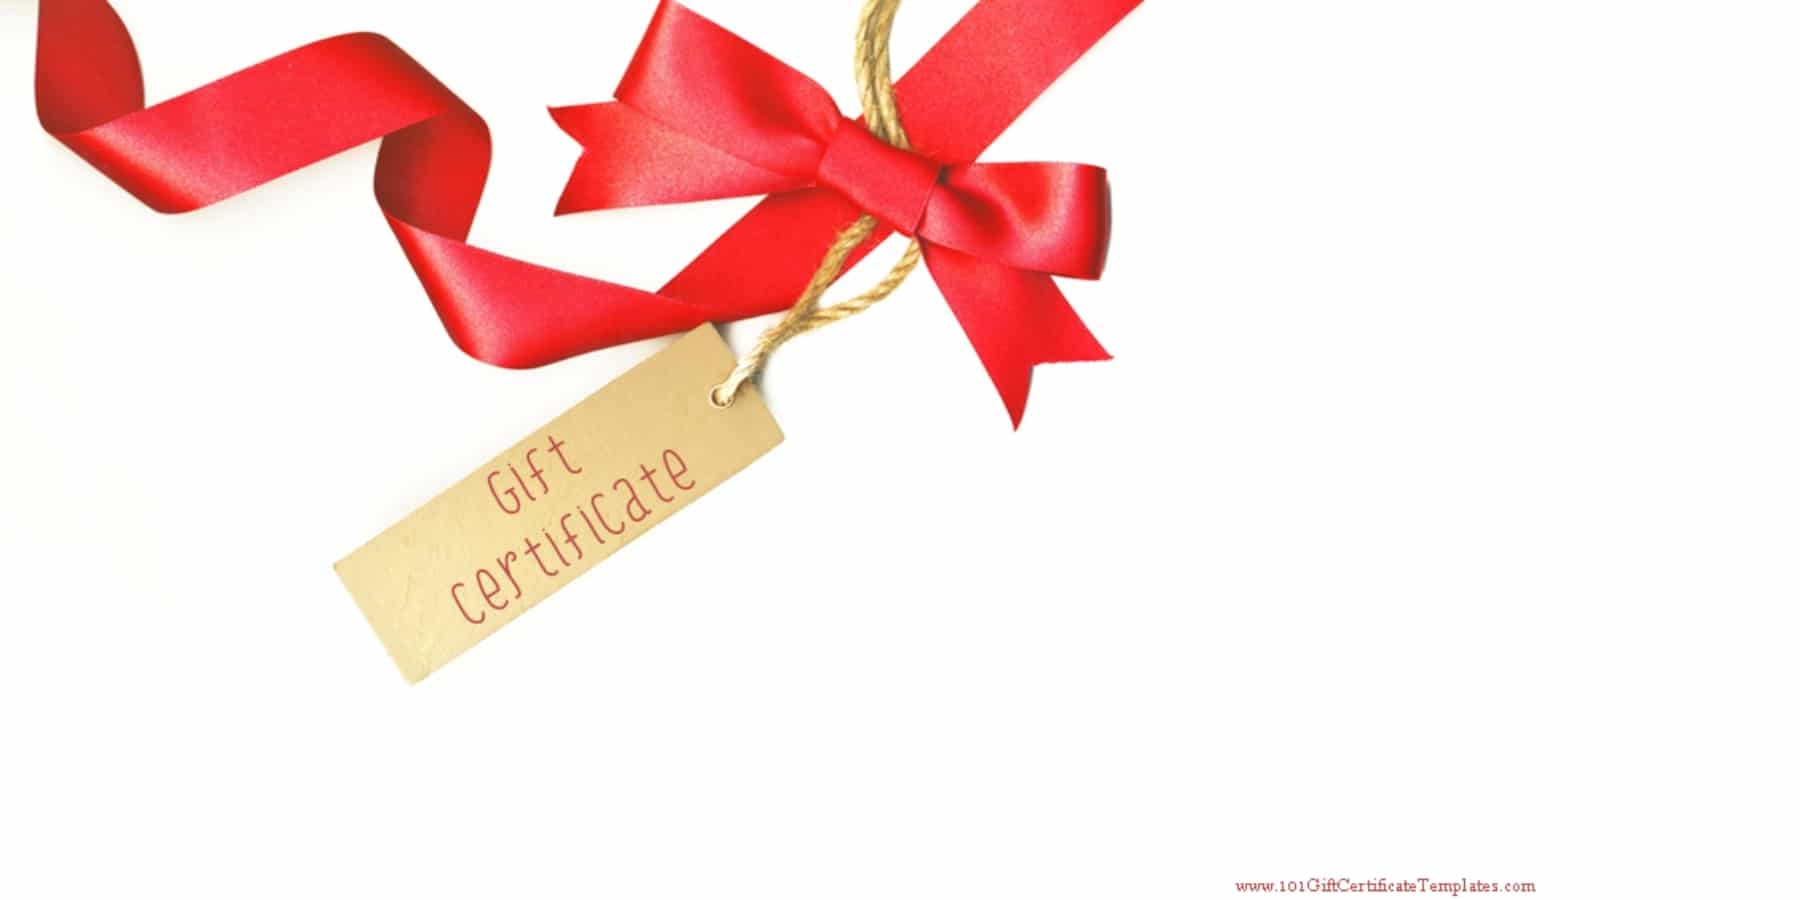 Printable gift certificate templates gift card which can be customized in any way with our gift card maker negle Images